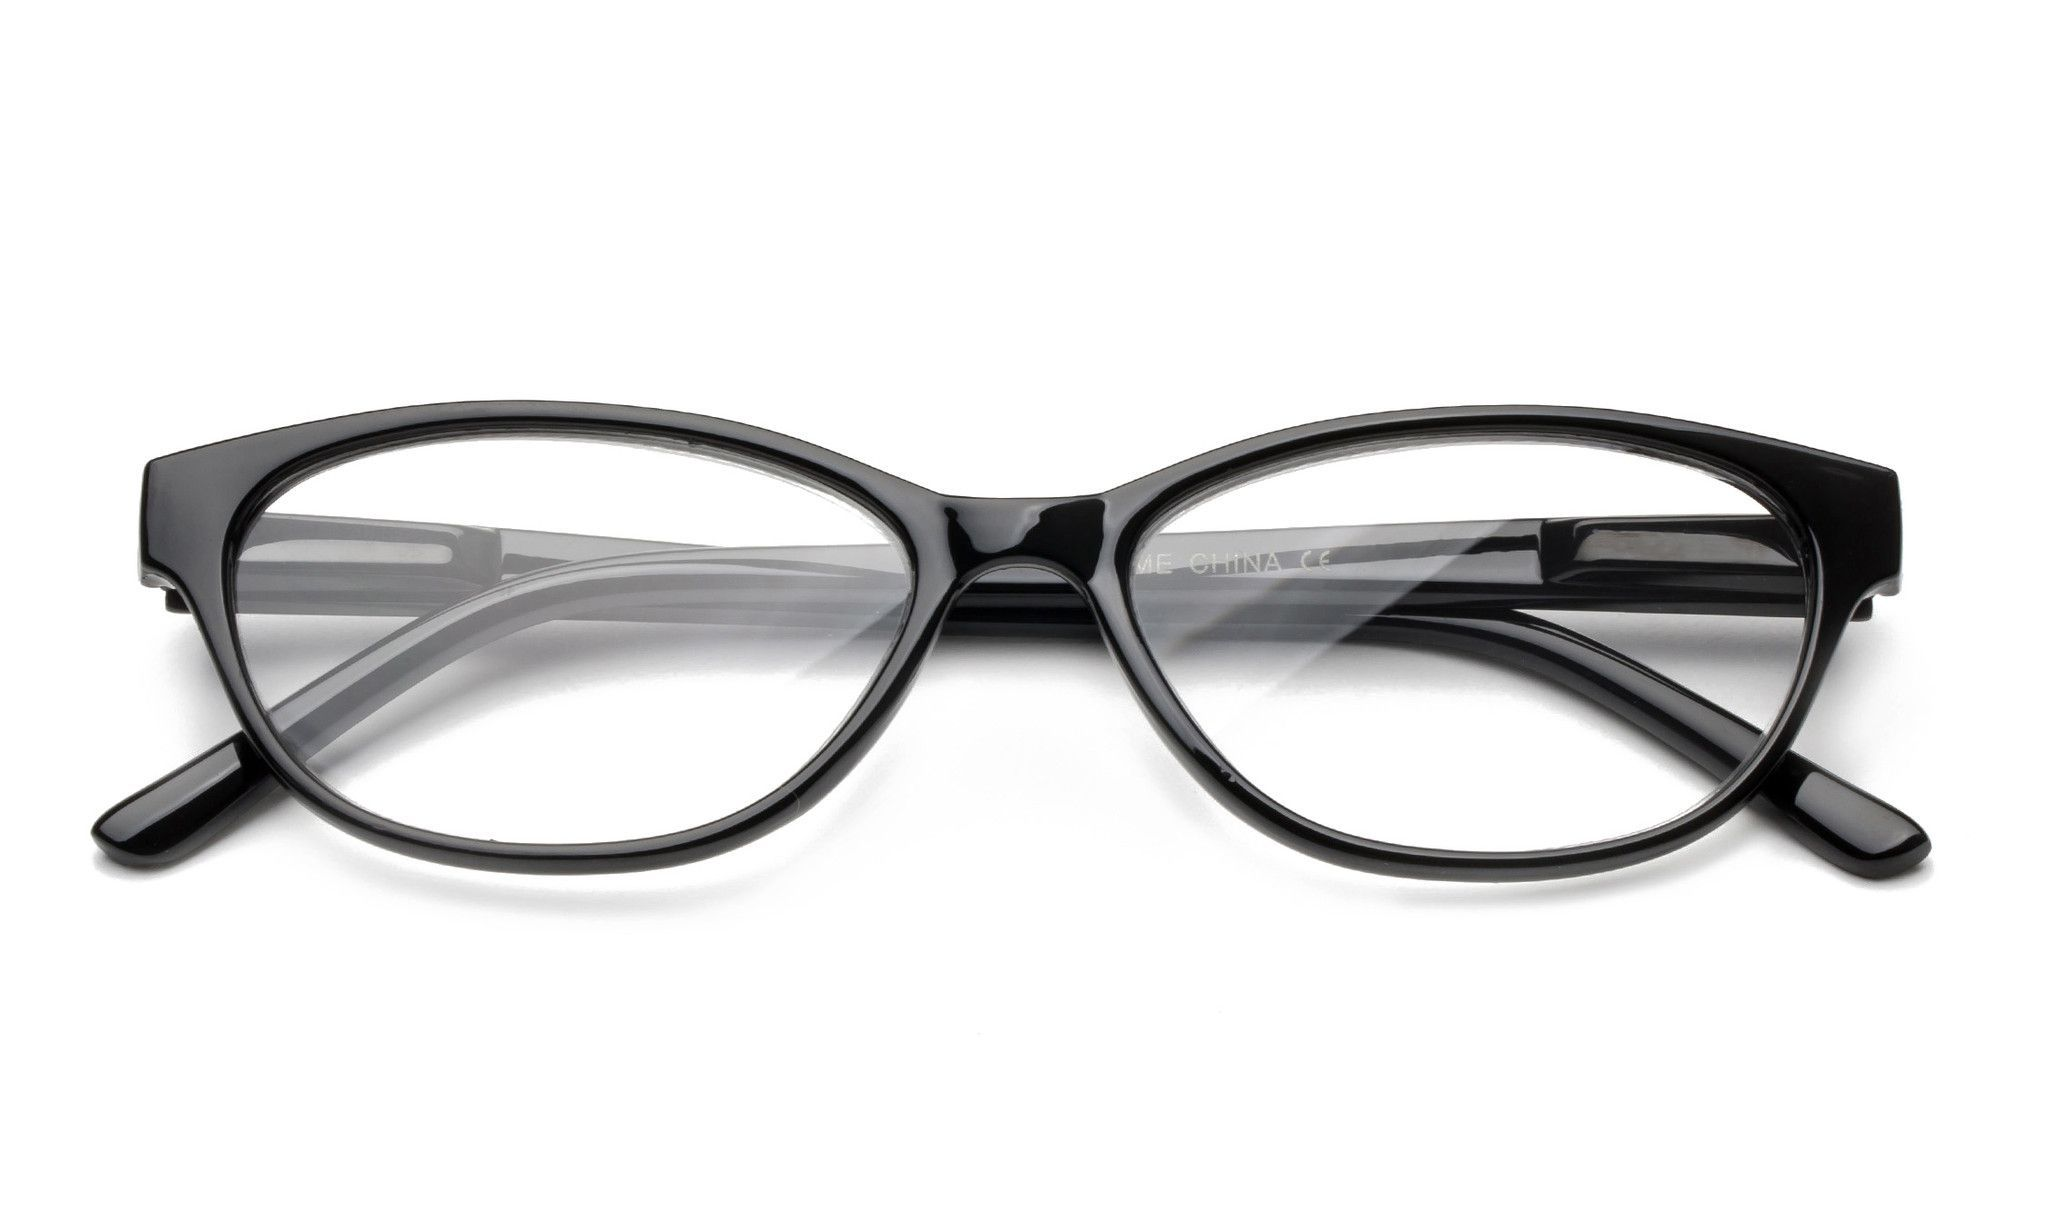 534dabb1ba1a CHERRY Glasses by Specsavers £85